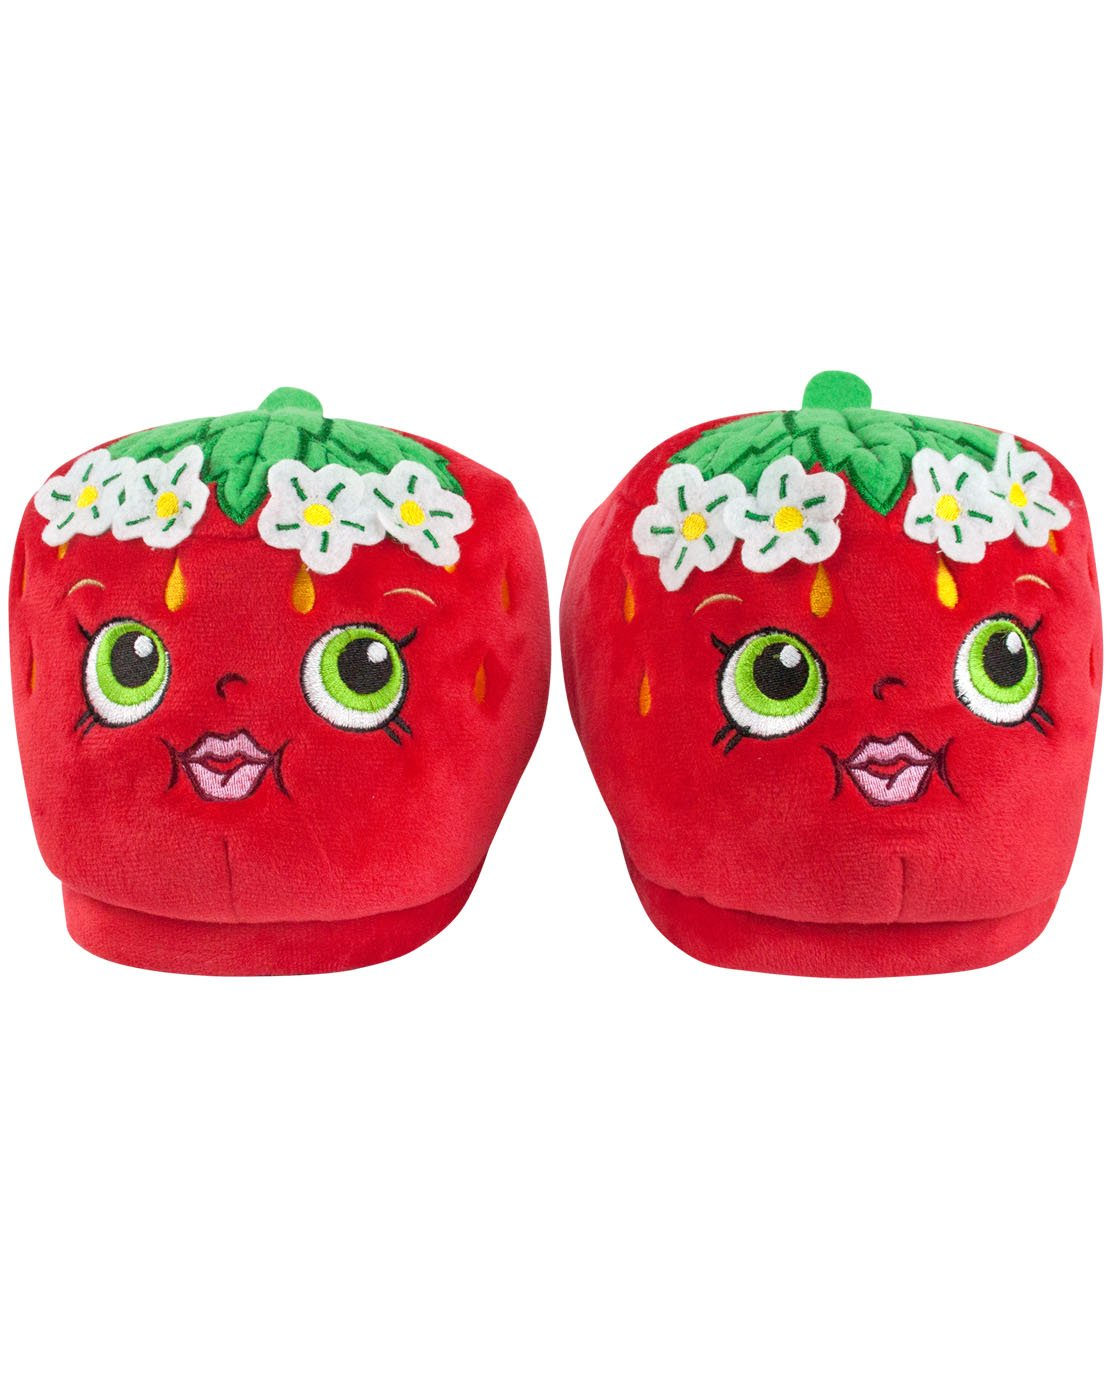 Shopkins Strawberry Kiss Girl's 3D Slippers